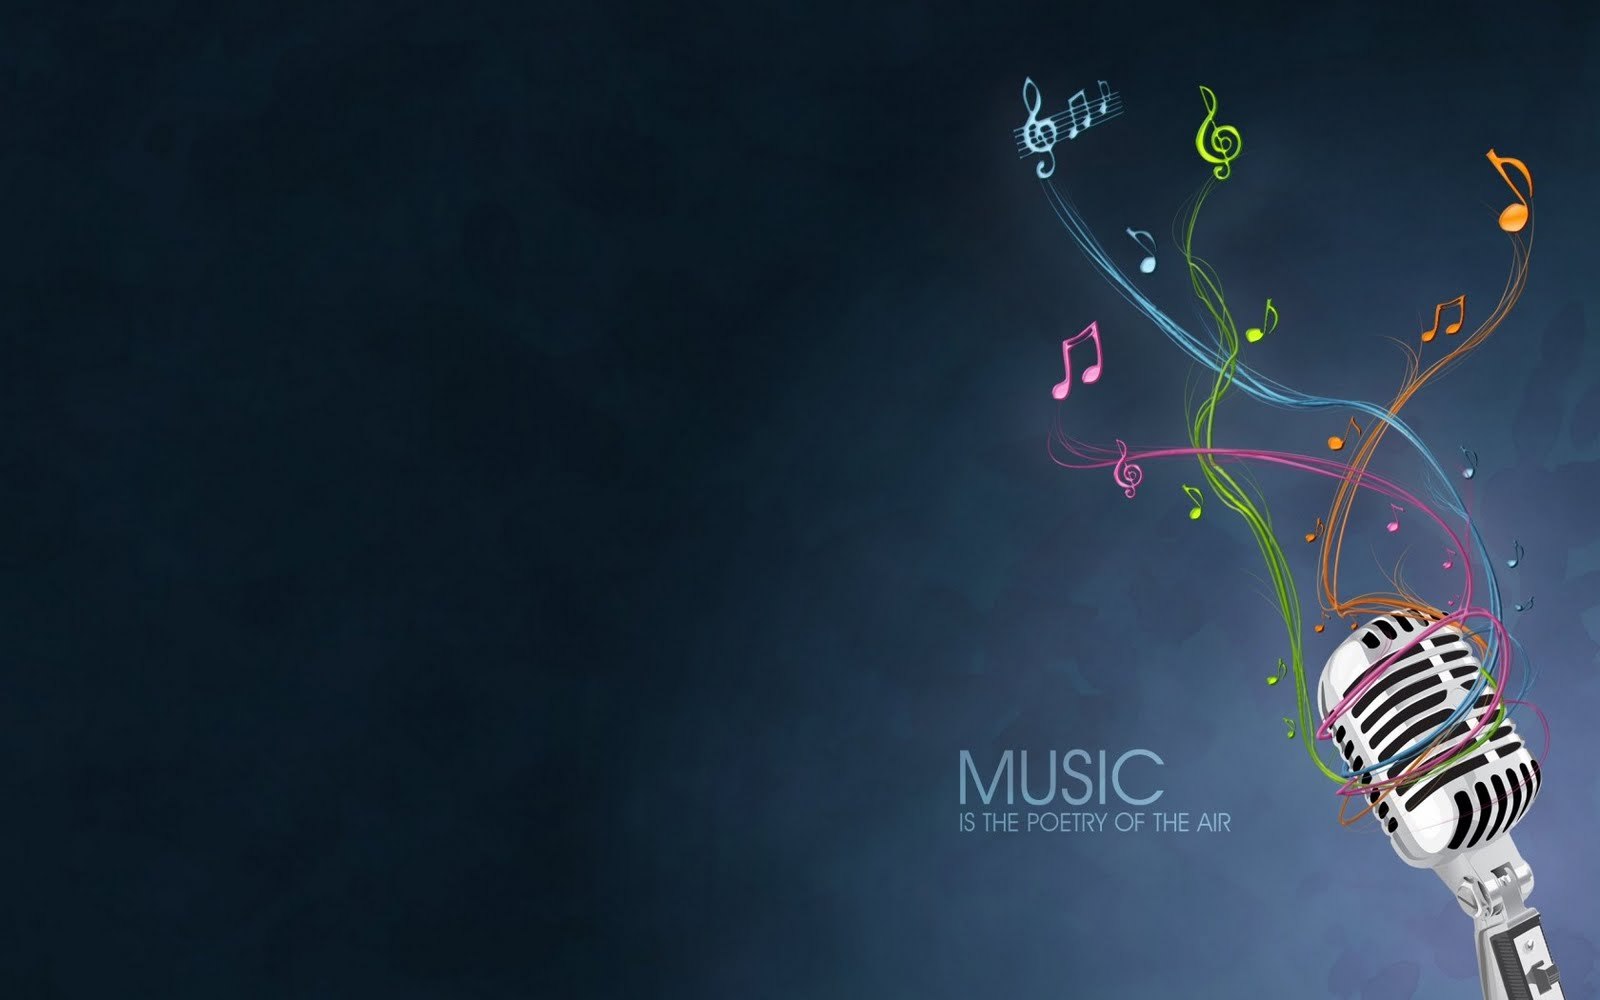 Music Background Images: Deroucicho: 35 Awesome Music Wallpapers